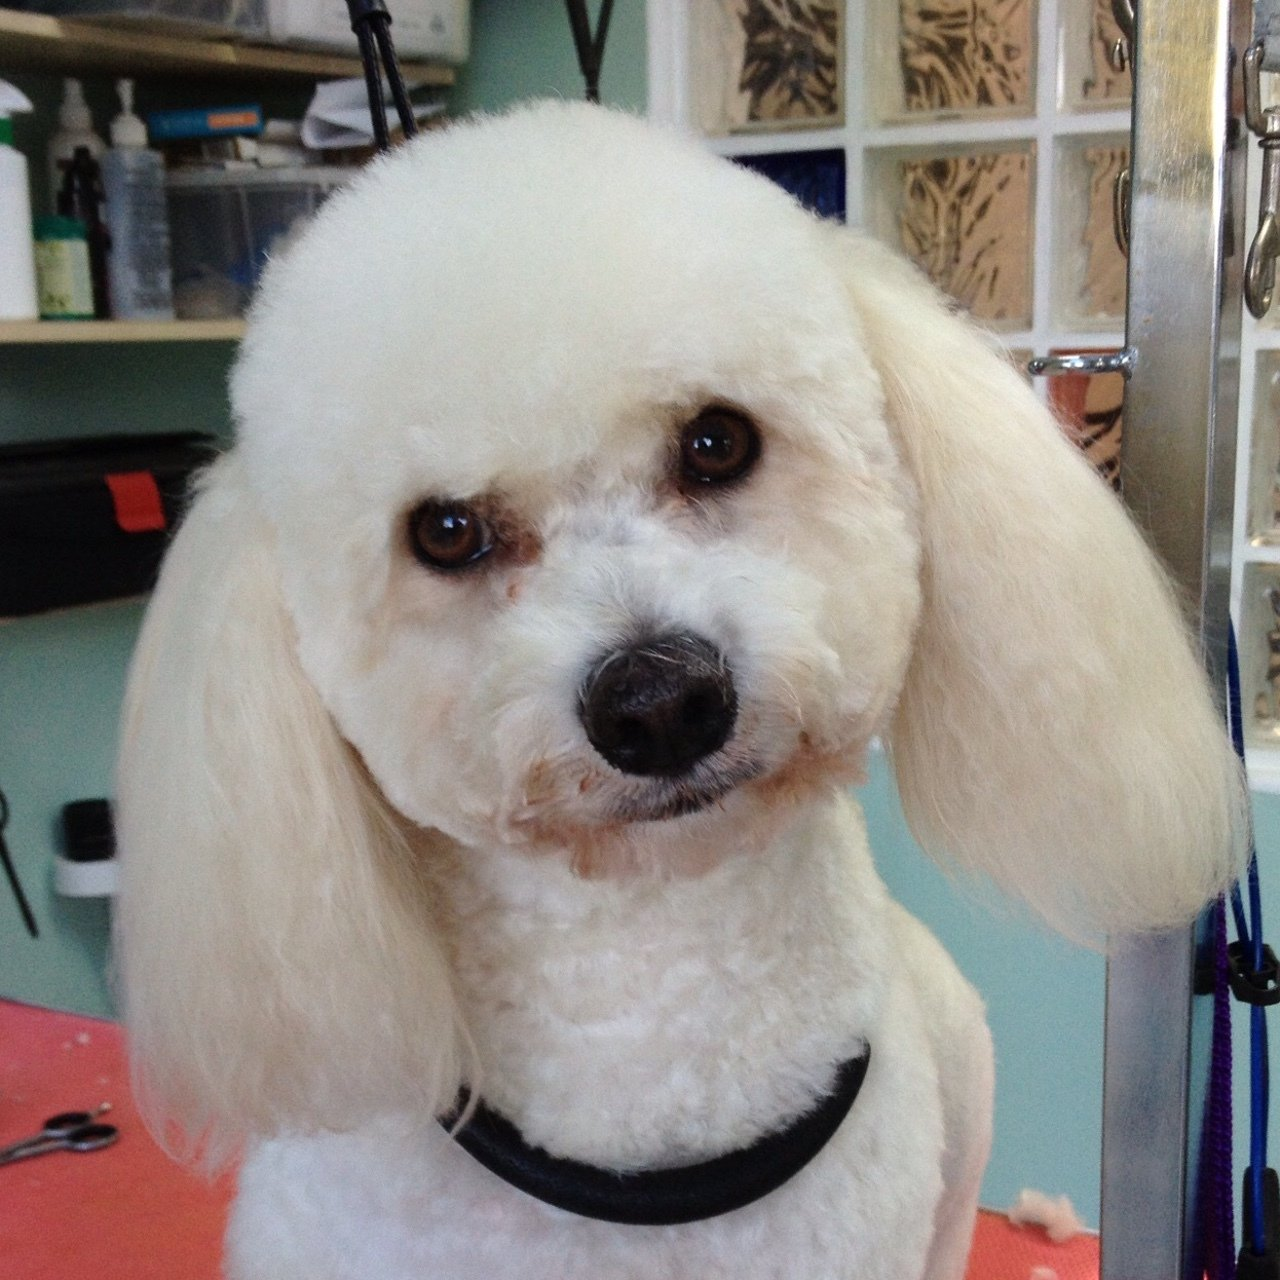 Well-groomed dog